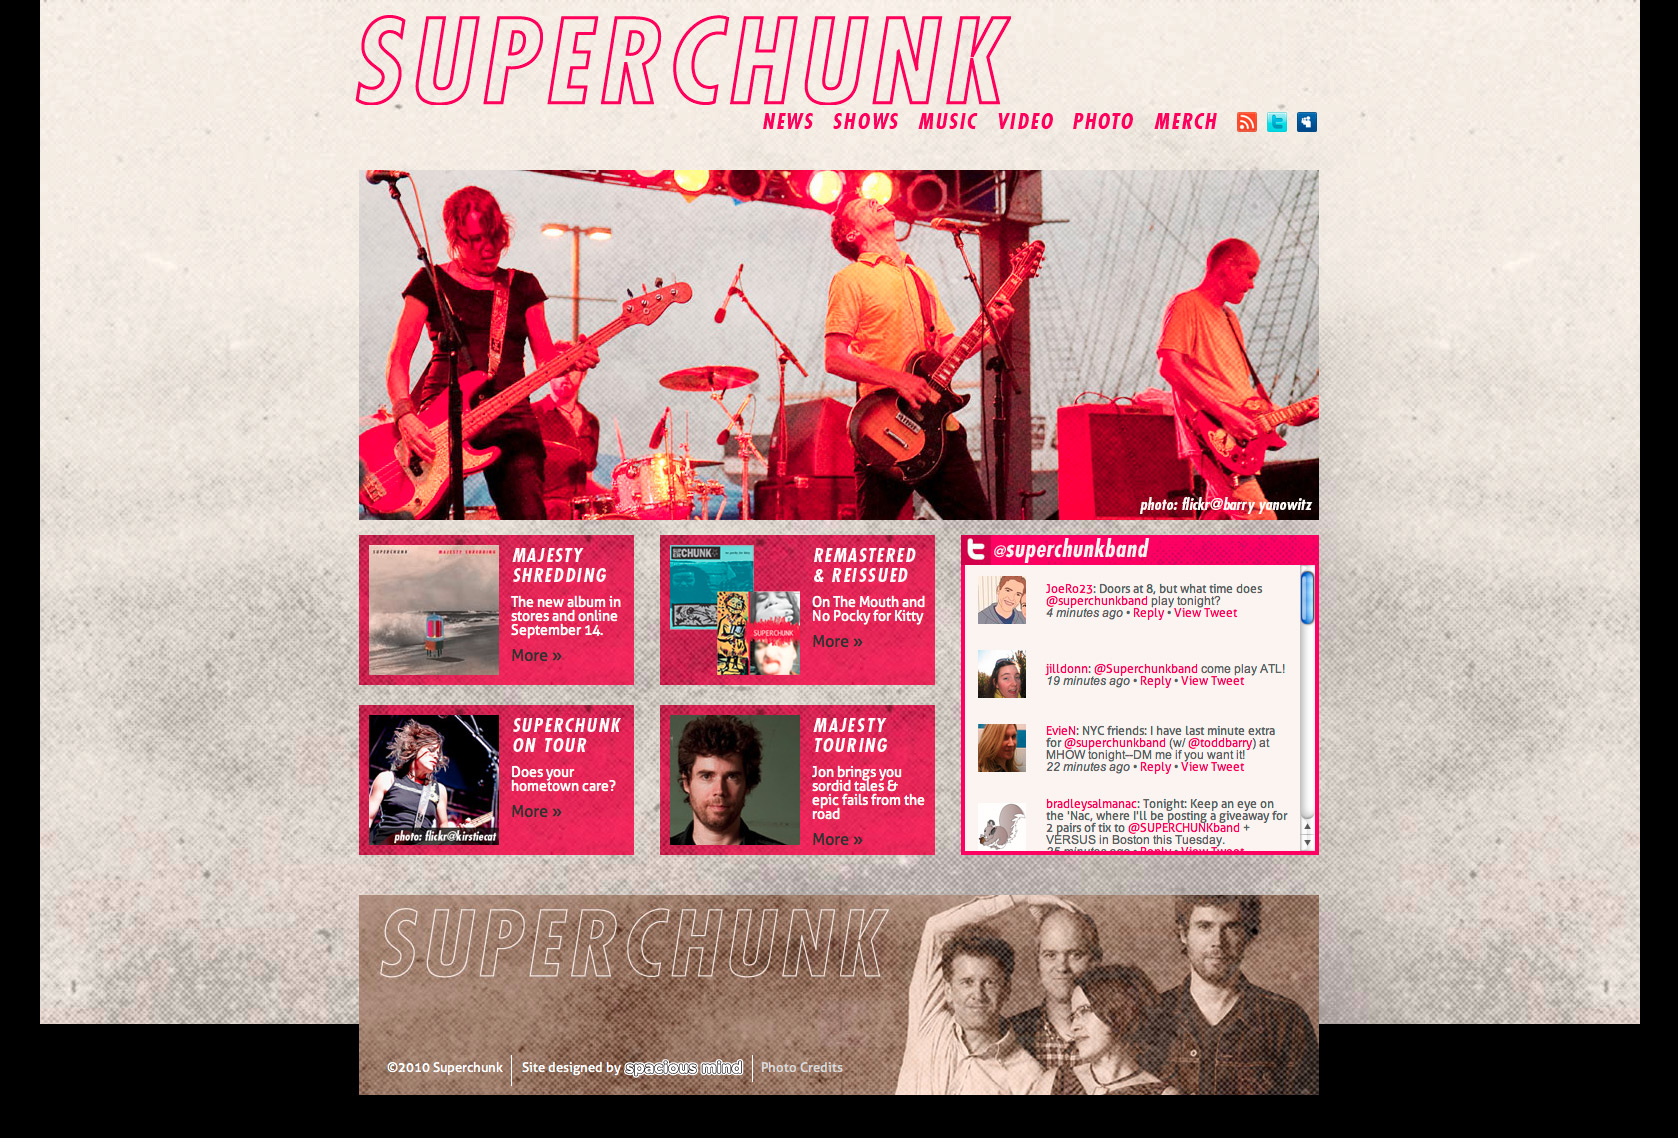 Superchunk website .  Photo of the band performing live, featured on their homepage.